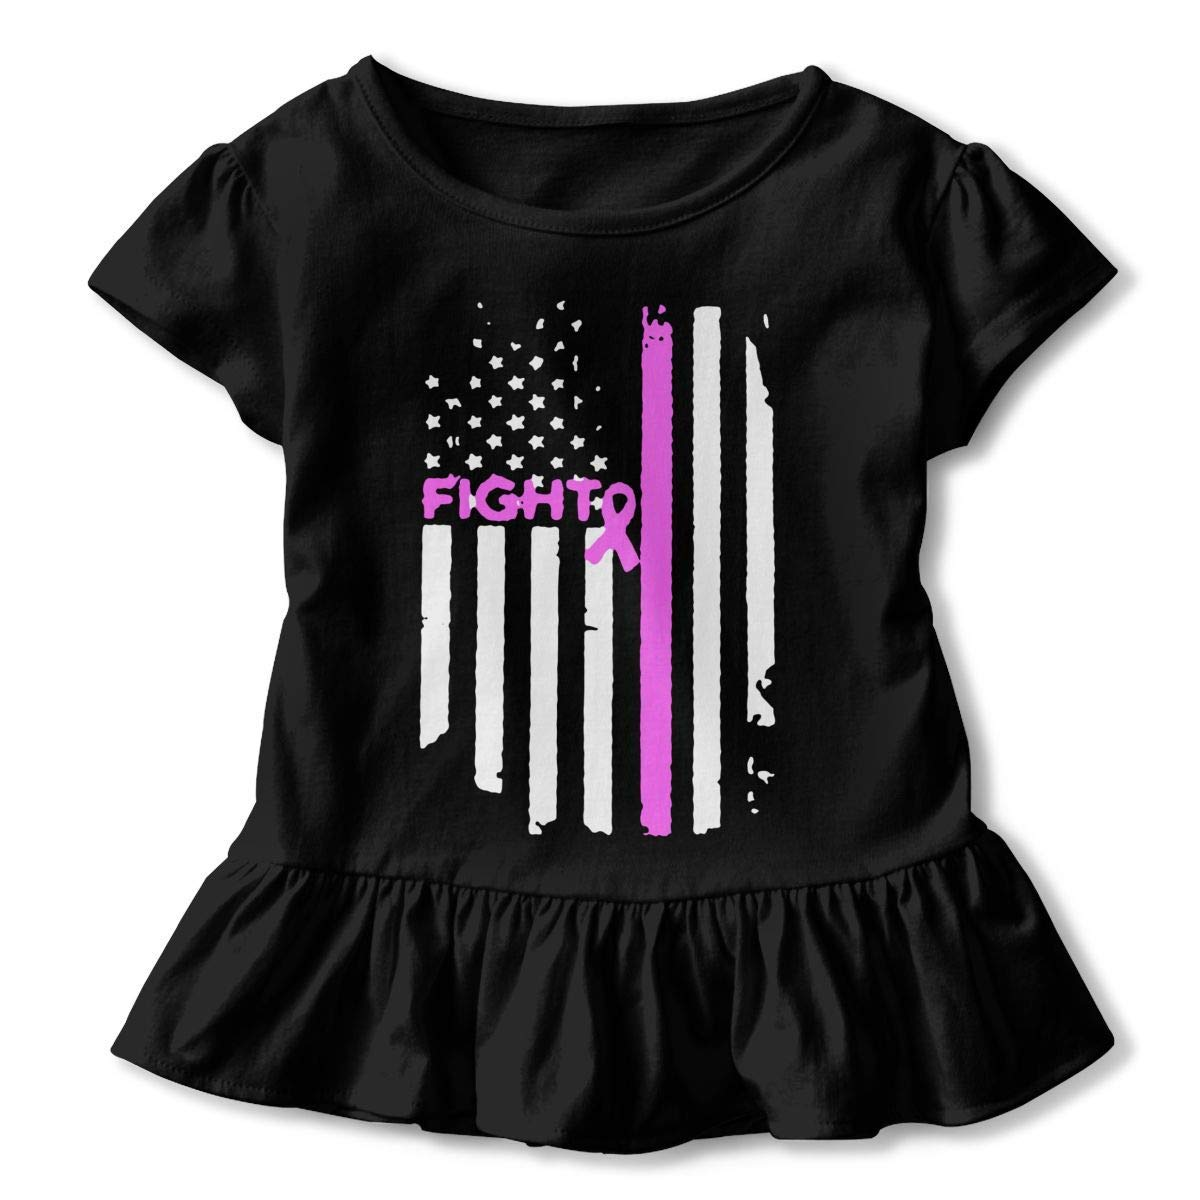 2-6T Ruffled Blouse Clothes with Falbala PMsunglasses Short Sleeve Fight Breast Cancer Shirts for Kids